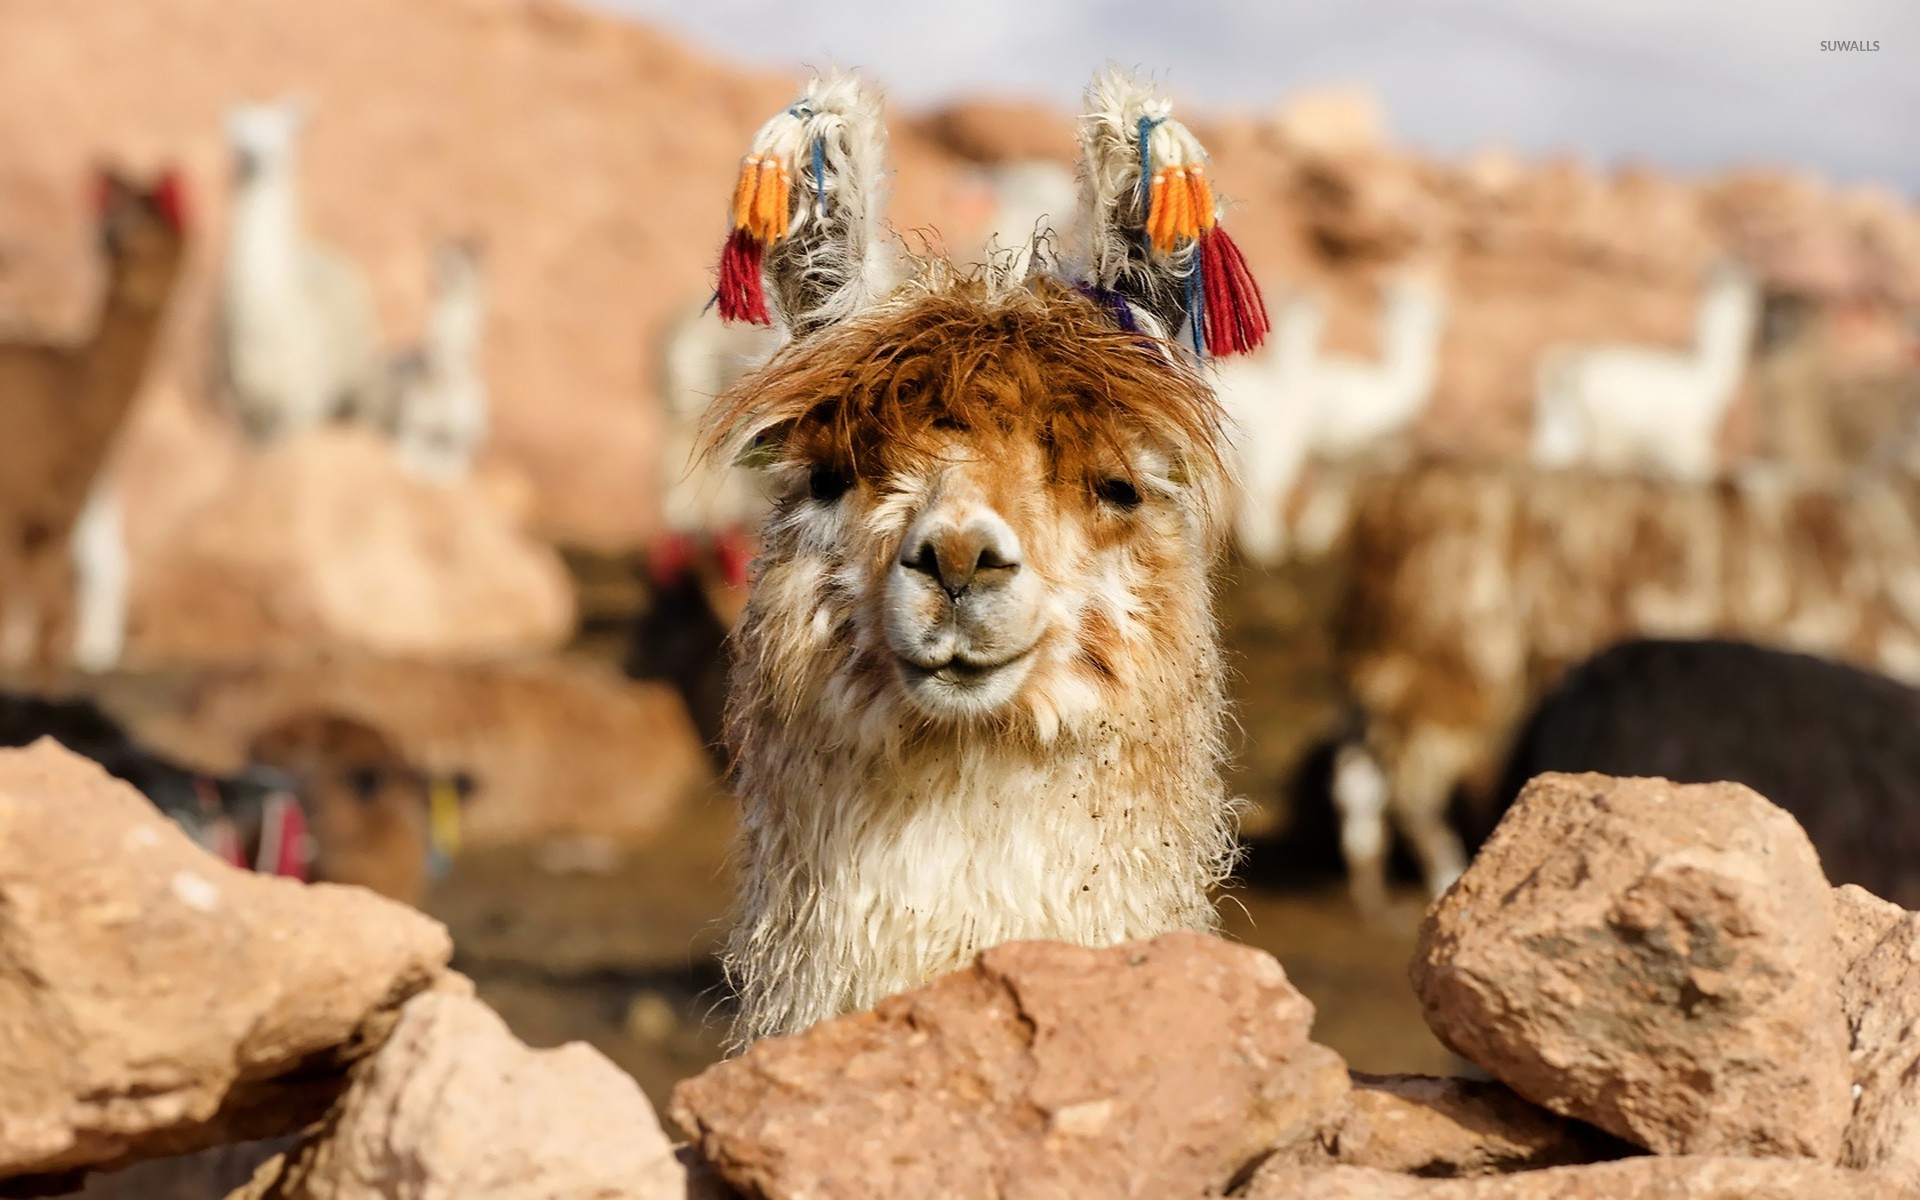 happy lama wallpaper - animal wallpapers - #25701